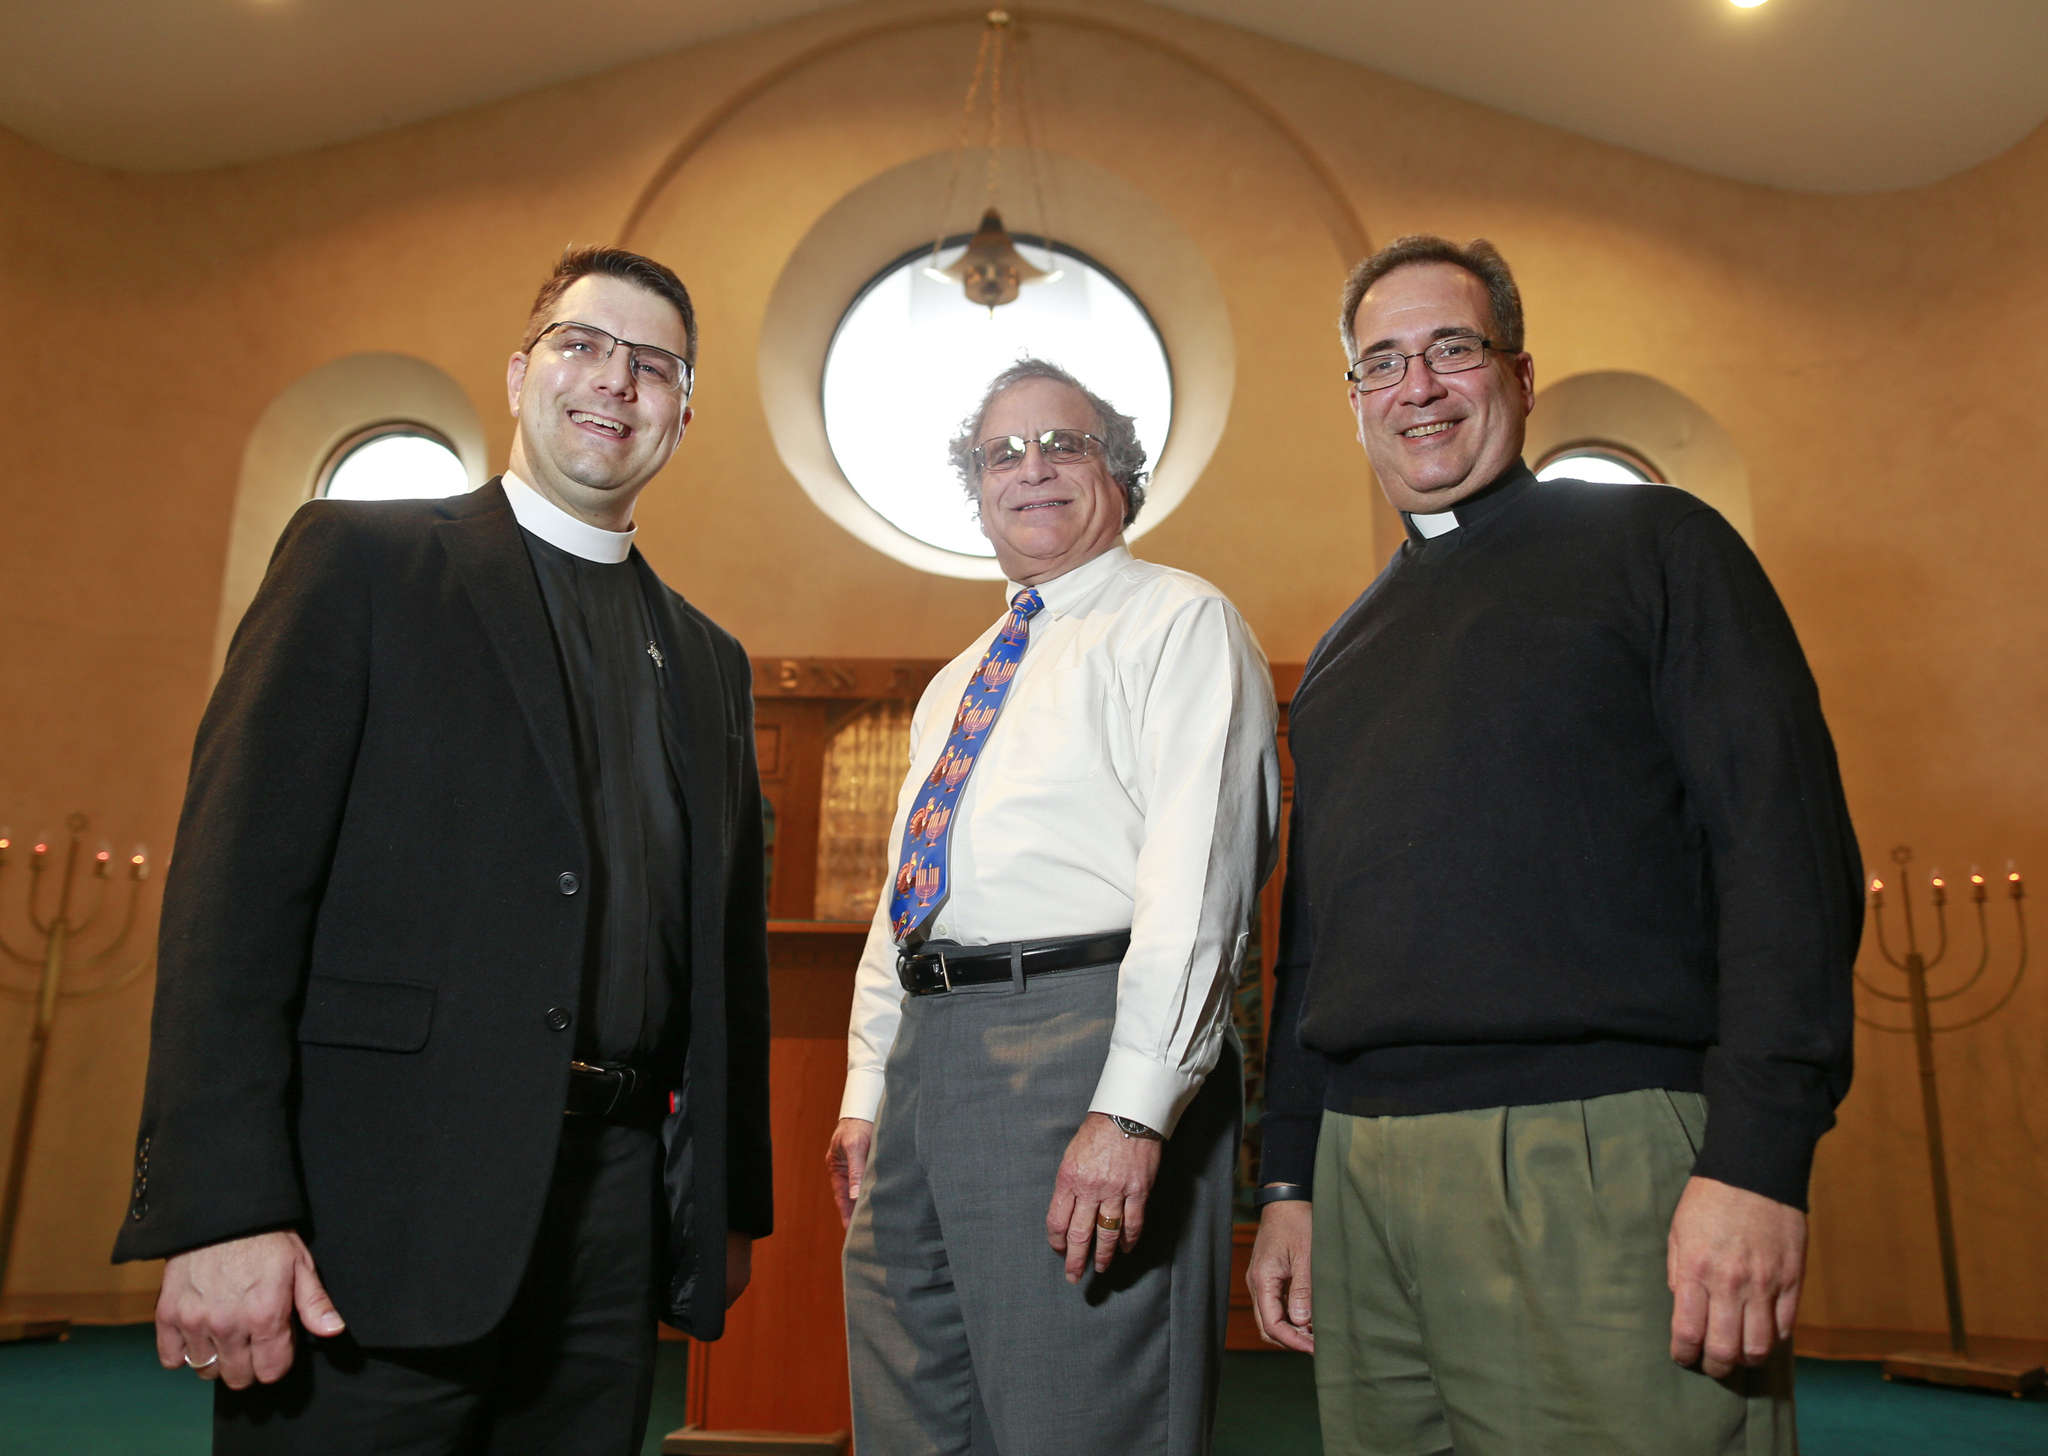 Joining in faiths (from left): The Rev. Brett Ballenger, Rabbi Gary Gans, and the Rev. Rich LaVergetta.